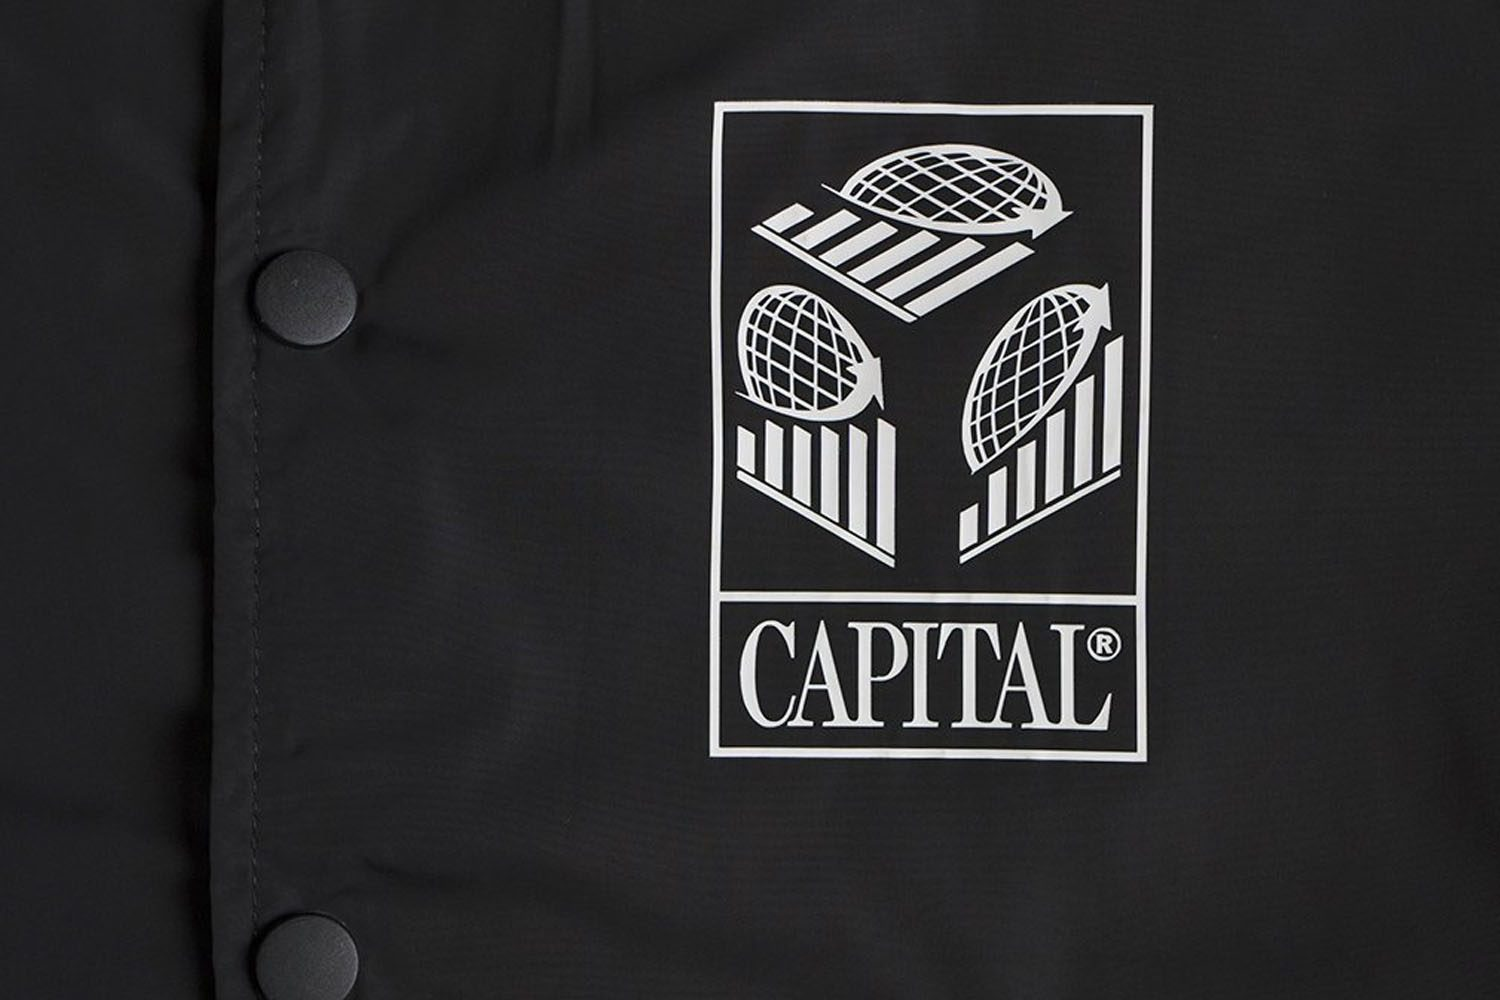 CAPITAL JKT FW 18 4